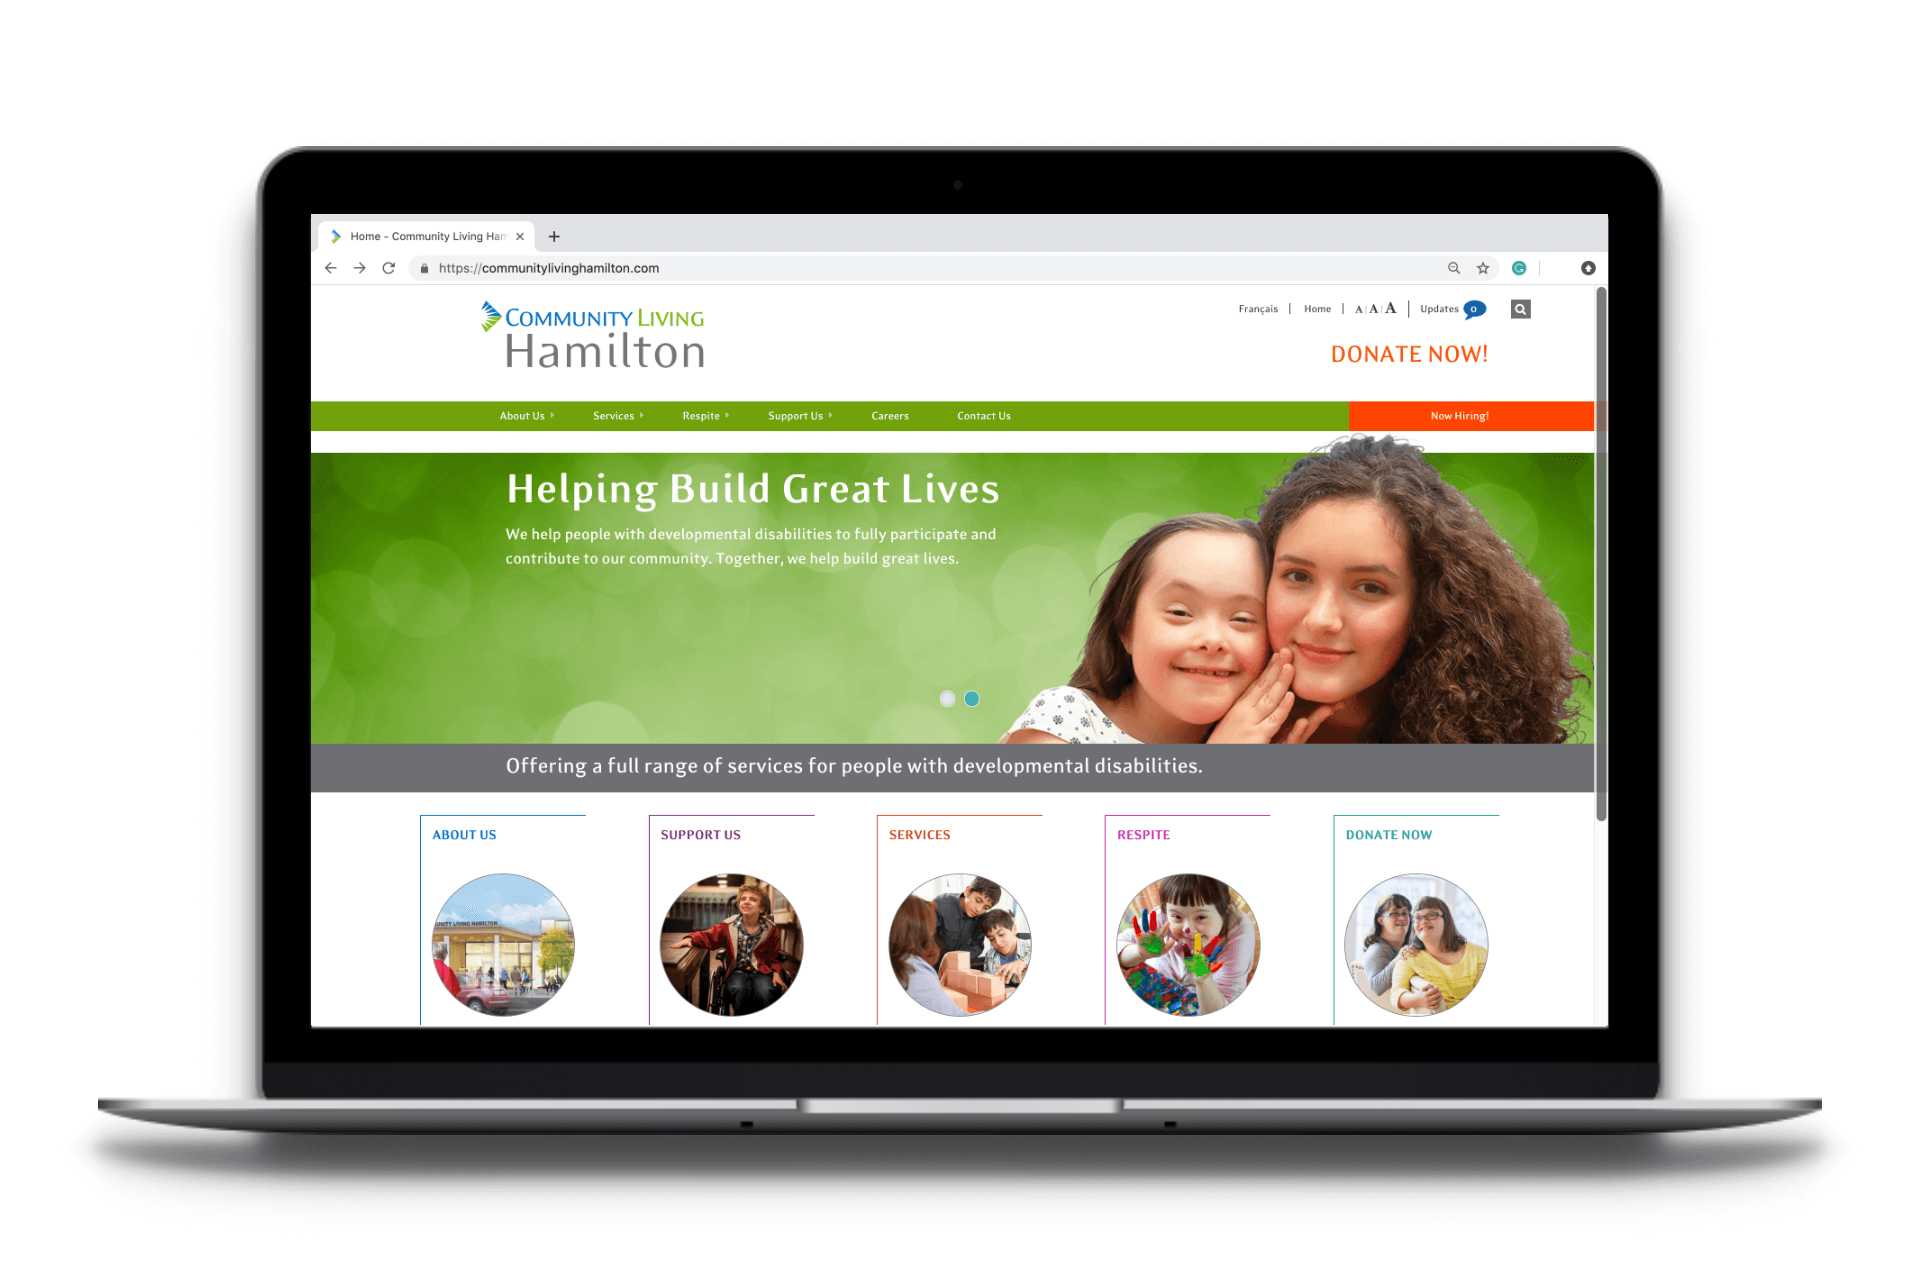 Website design for Community Living Hamilton - Home Page